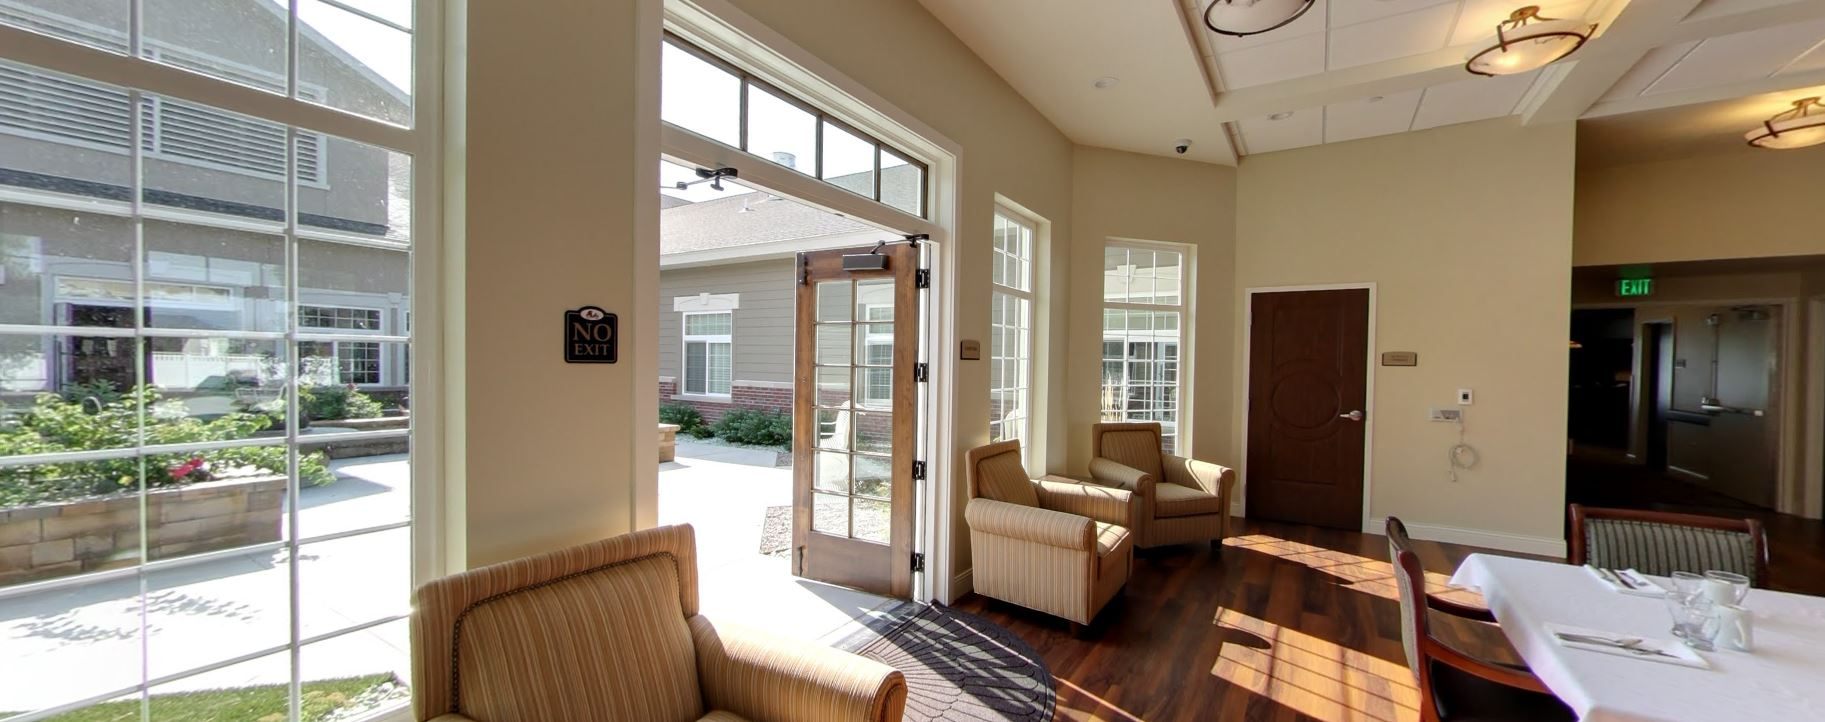 -carriage cove rexburg idaho tanabell health services sun and dining room